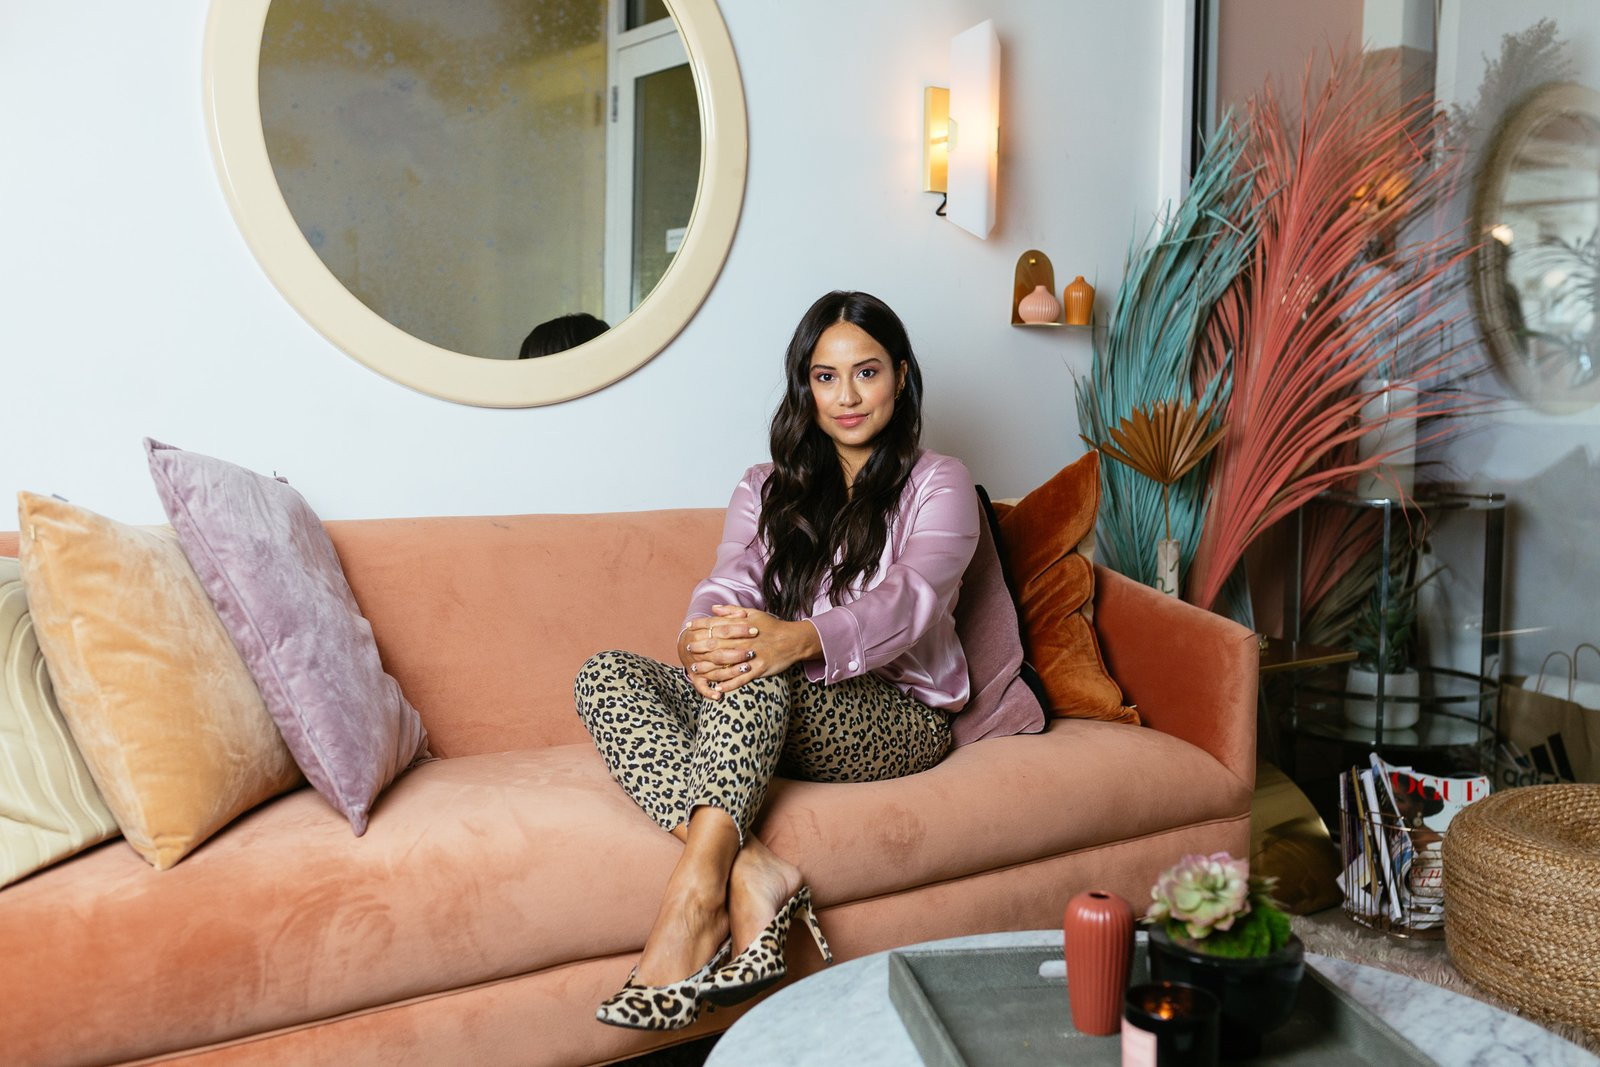 Photo 1 of 8 in Chillhouse Founder Cyndi Ramirez Reveals How to Create Cool, Collected Bathroom Vibes